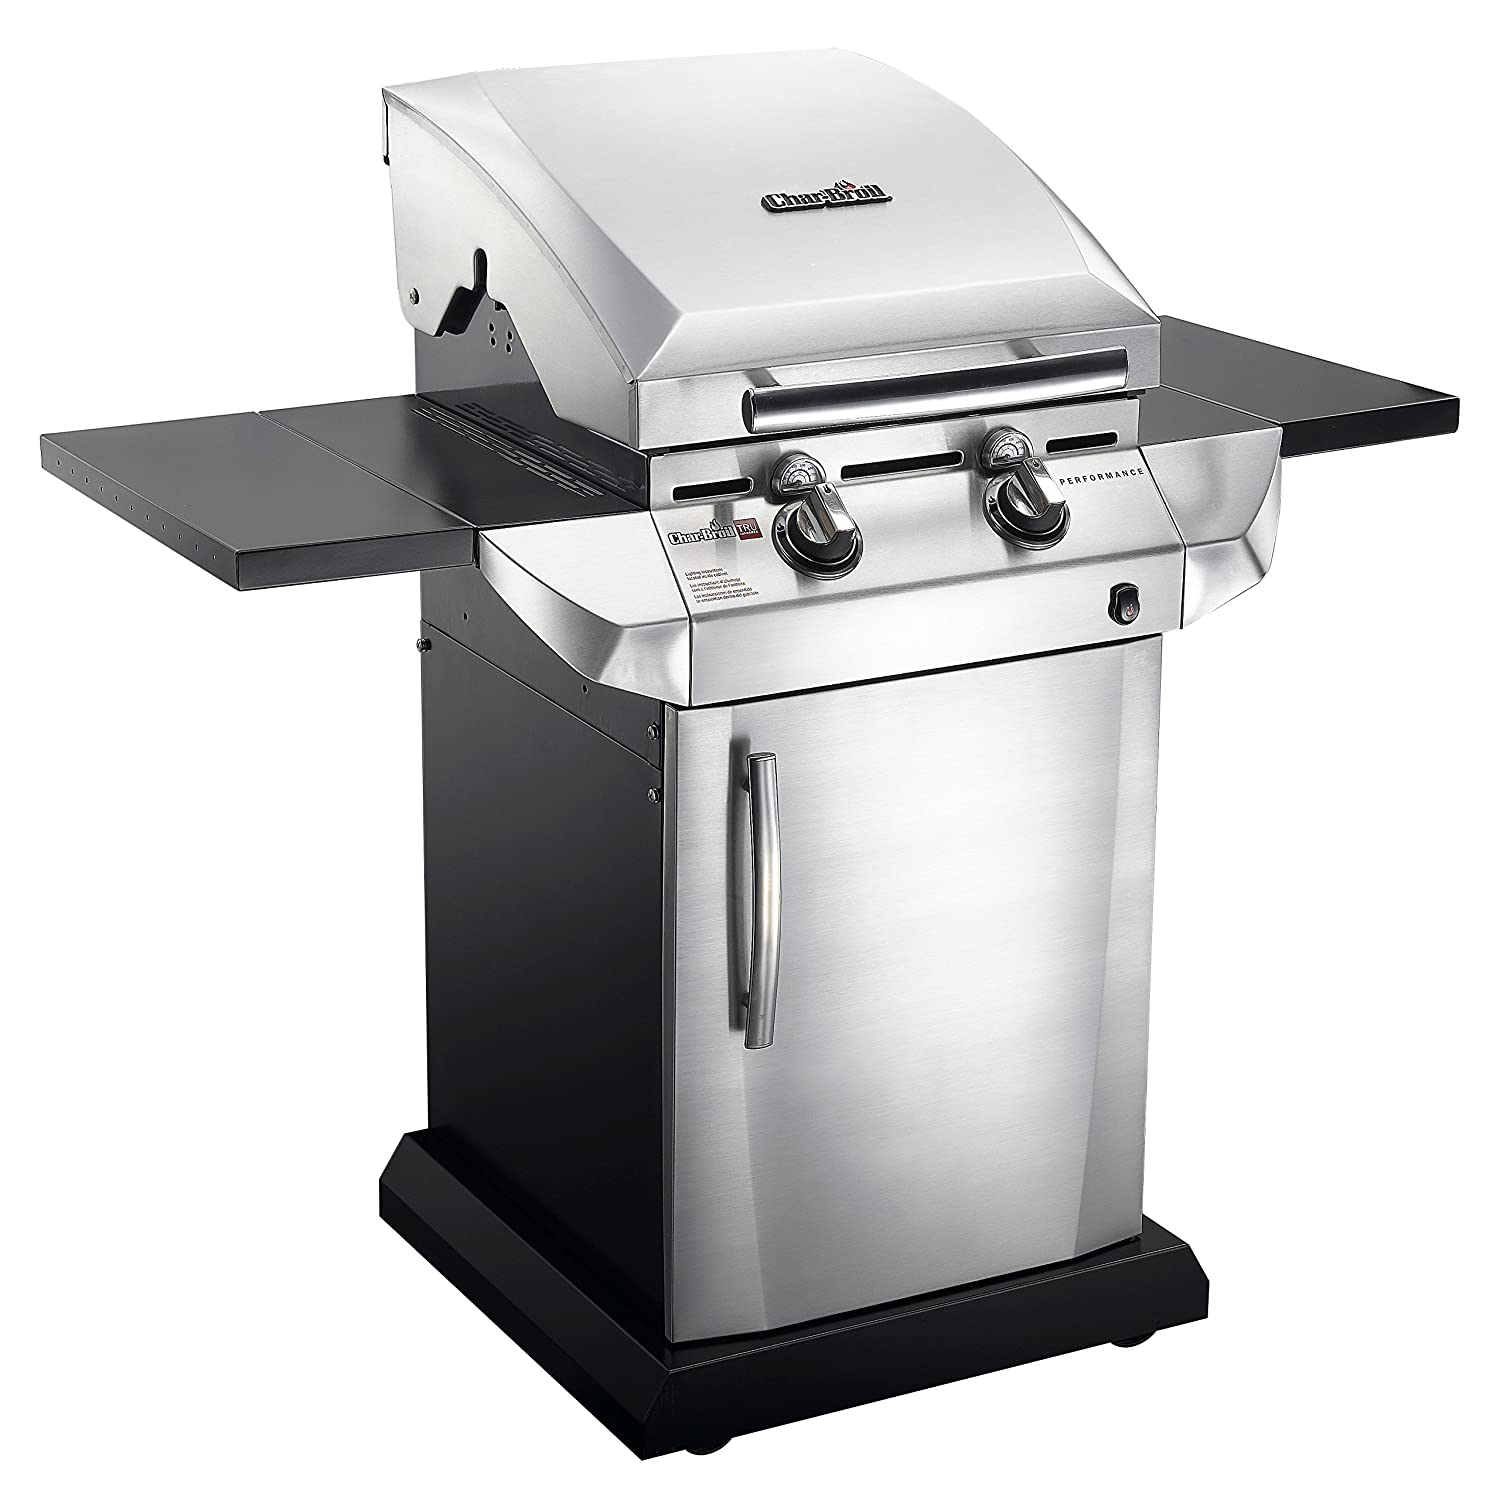 char broil performance tru infrared 340 2 burner gas grill ebay. Black Bedroom Furniture Sets. Home Design Ideas